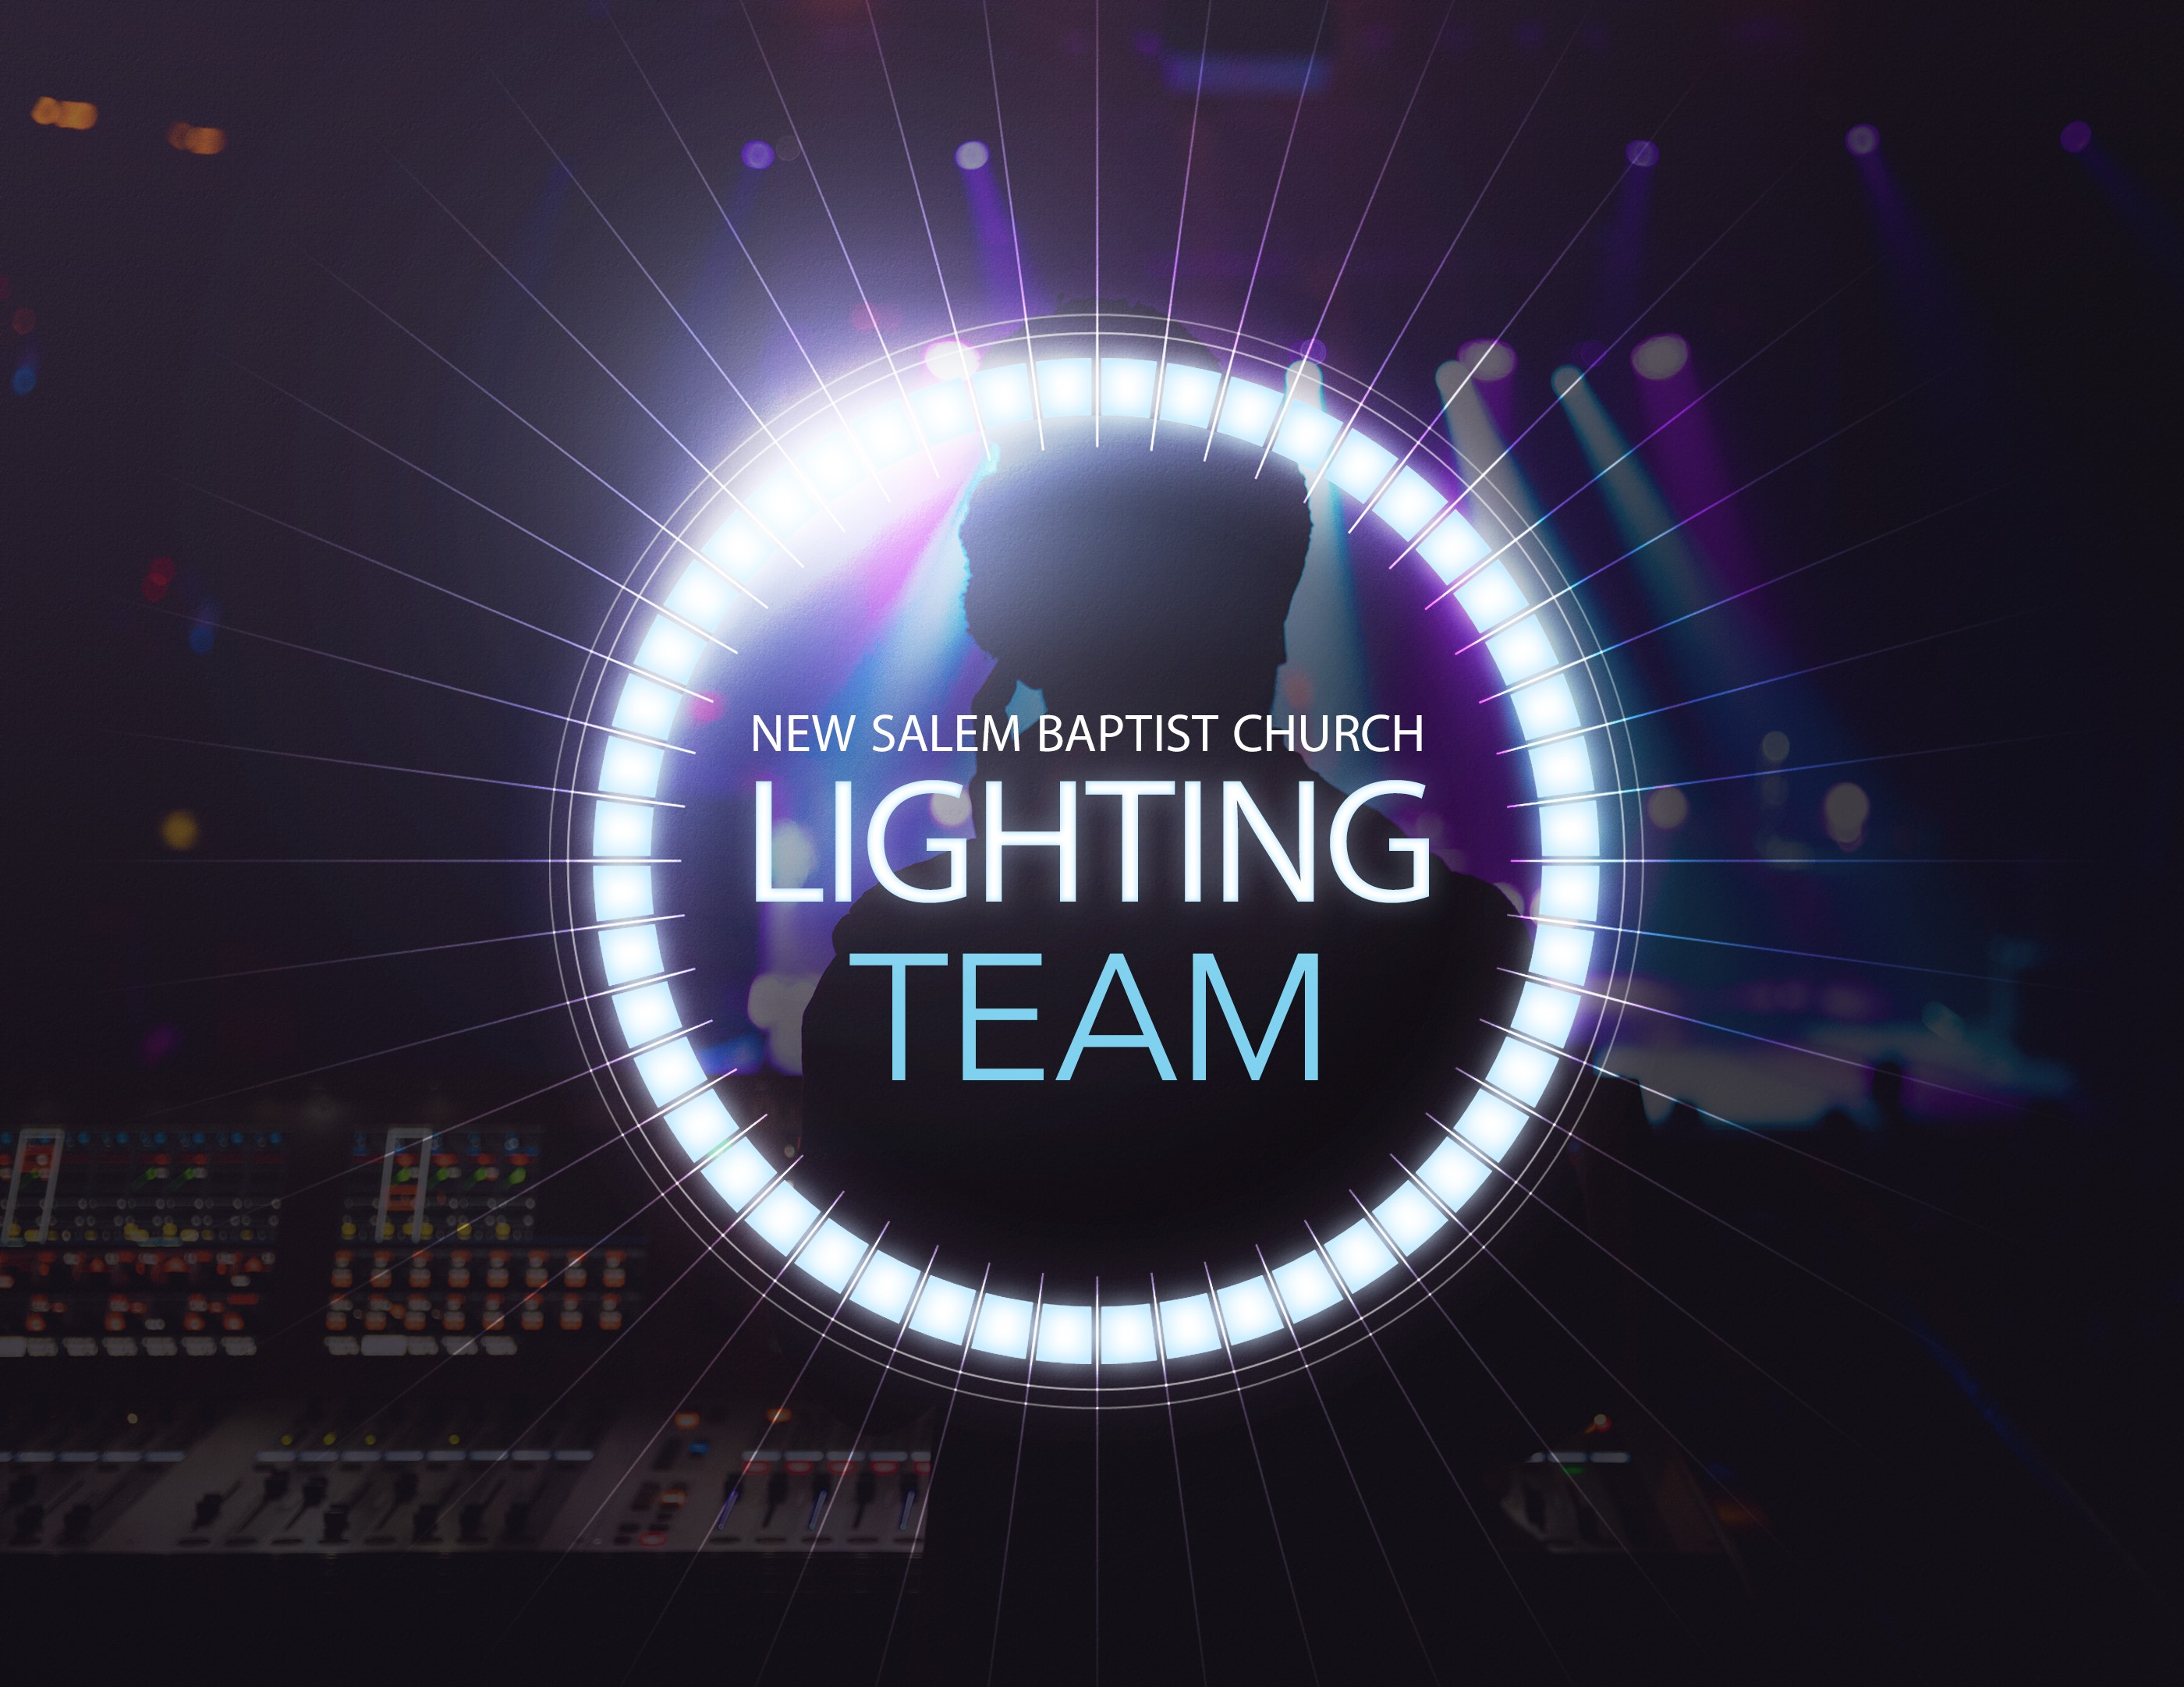 Lighting Team